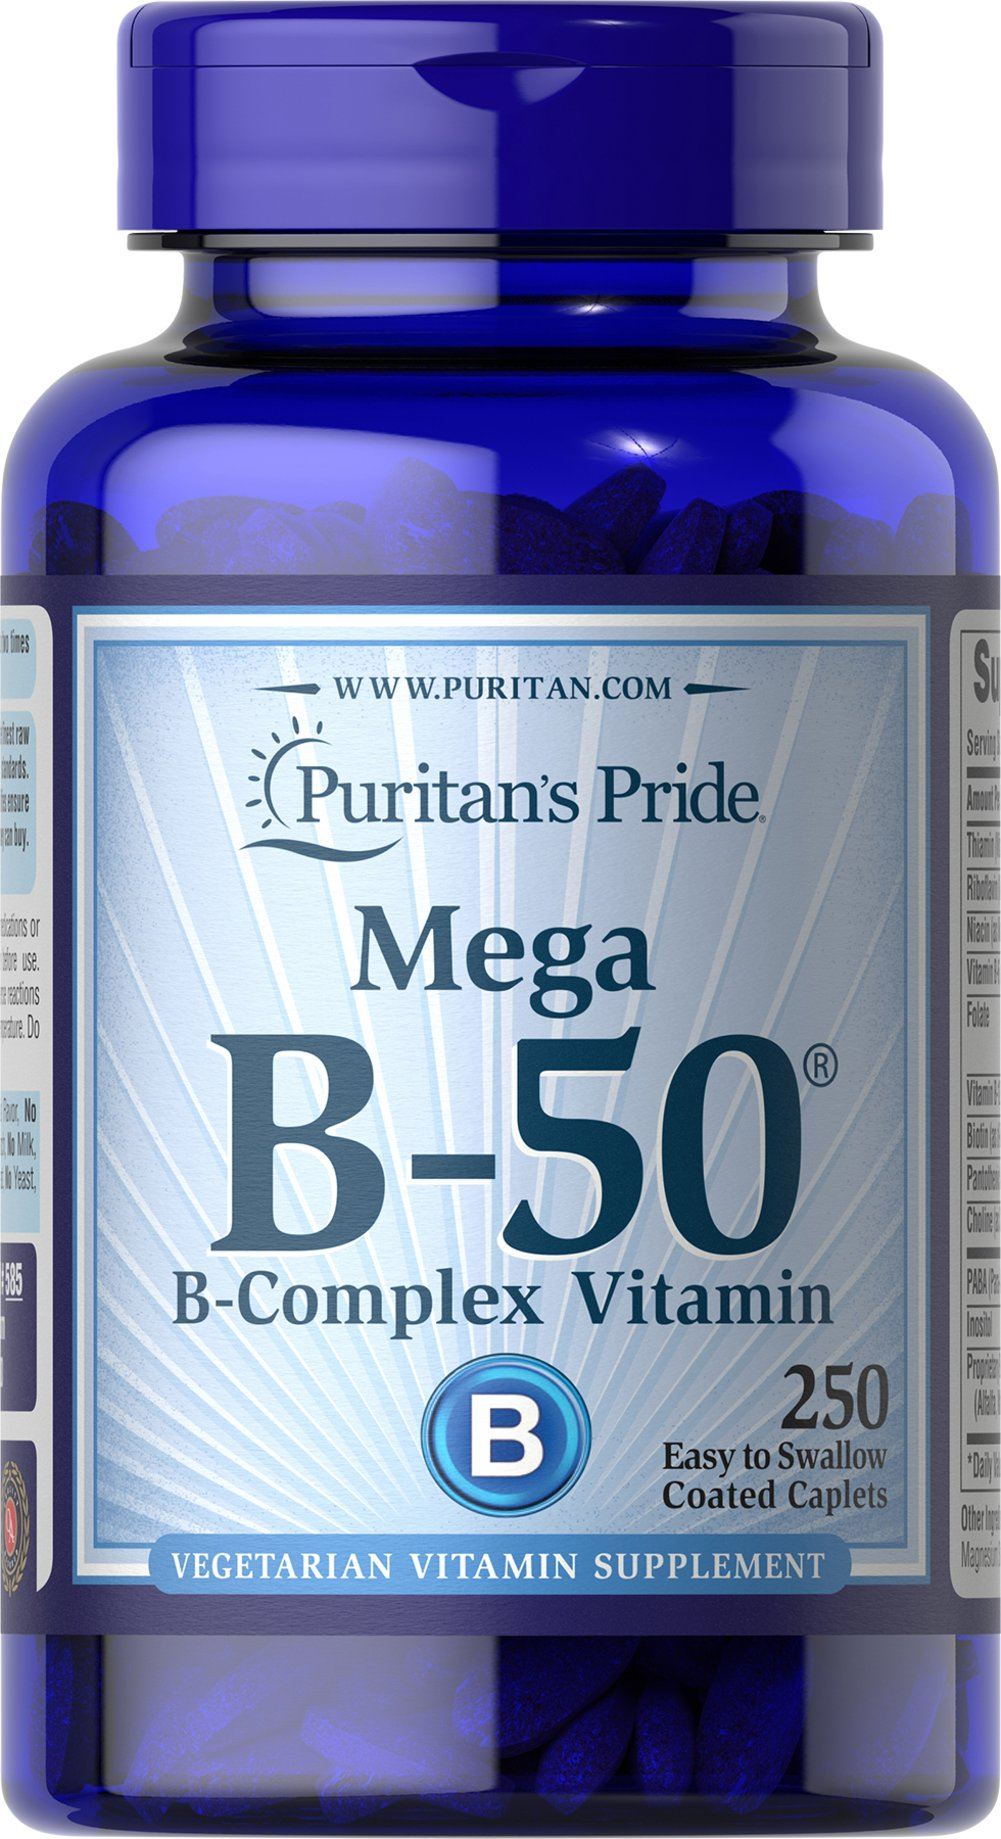 Vitamin B-50® Complex <p>The Vitamin B-50® Complex is made up of several vitamins that work well together to support nervous system health.** B Complex vitamins also promote energy metabolism.** Each nutrient in the Vitamin B Complex performs a unique role in maintaining proper metabolic functioning and is essential for well being.**</p> 250 Caplets 50 mg $37.99